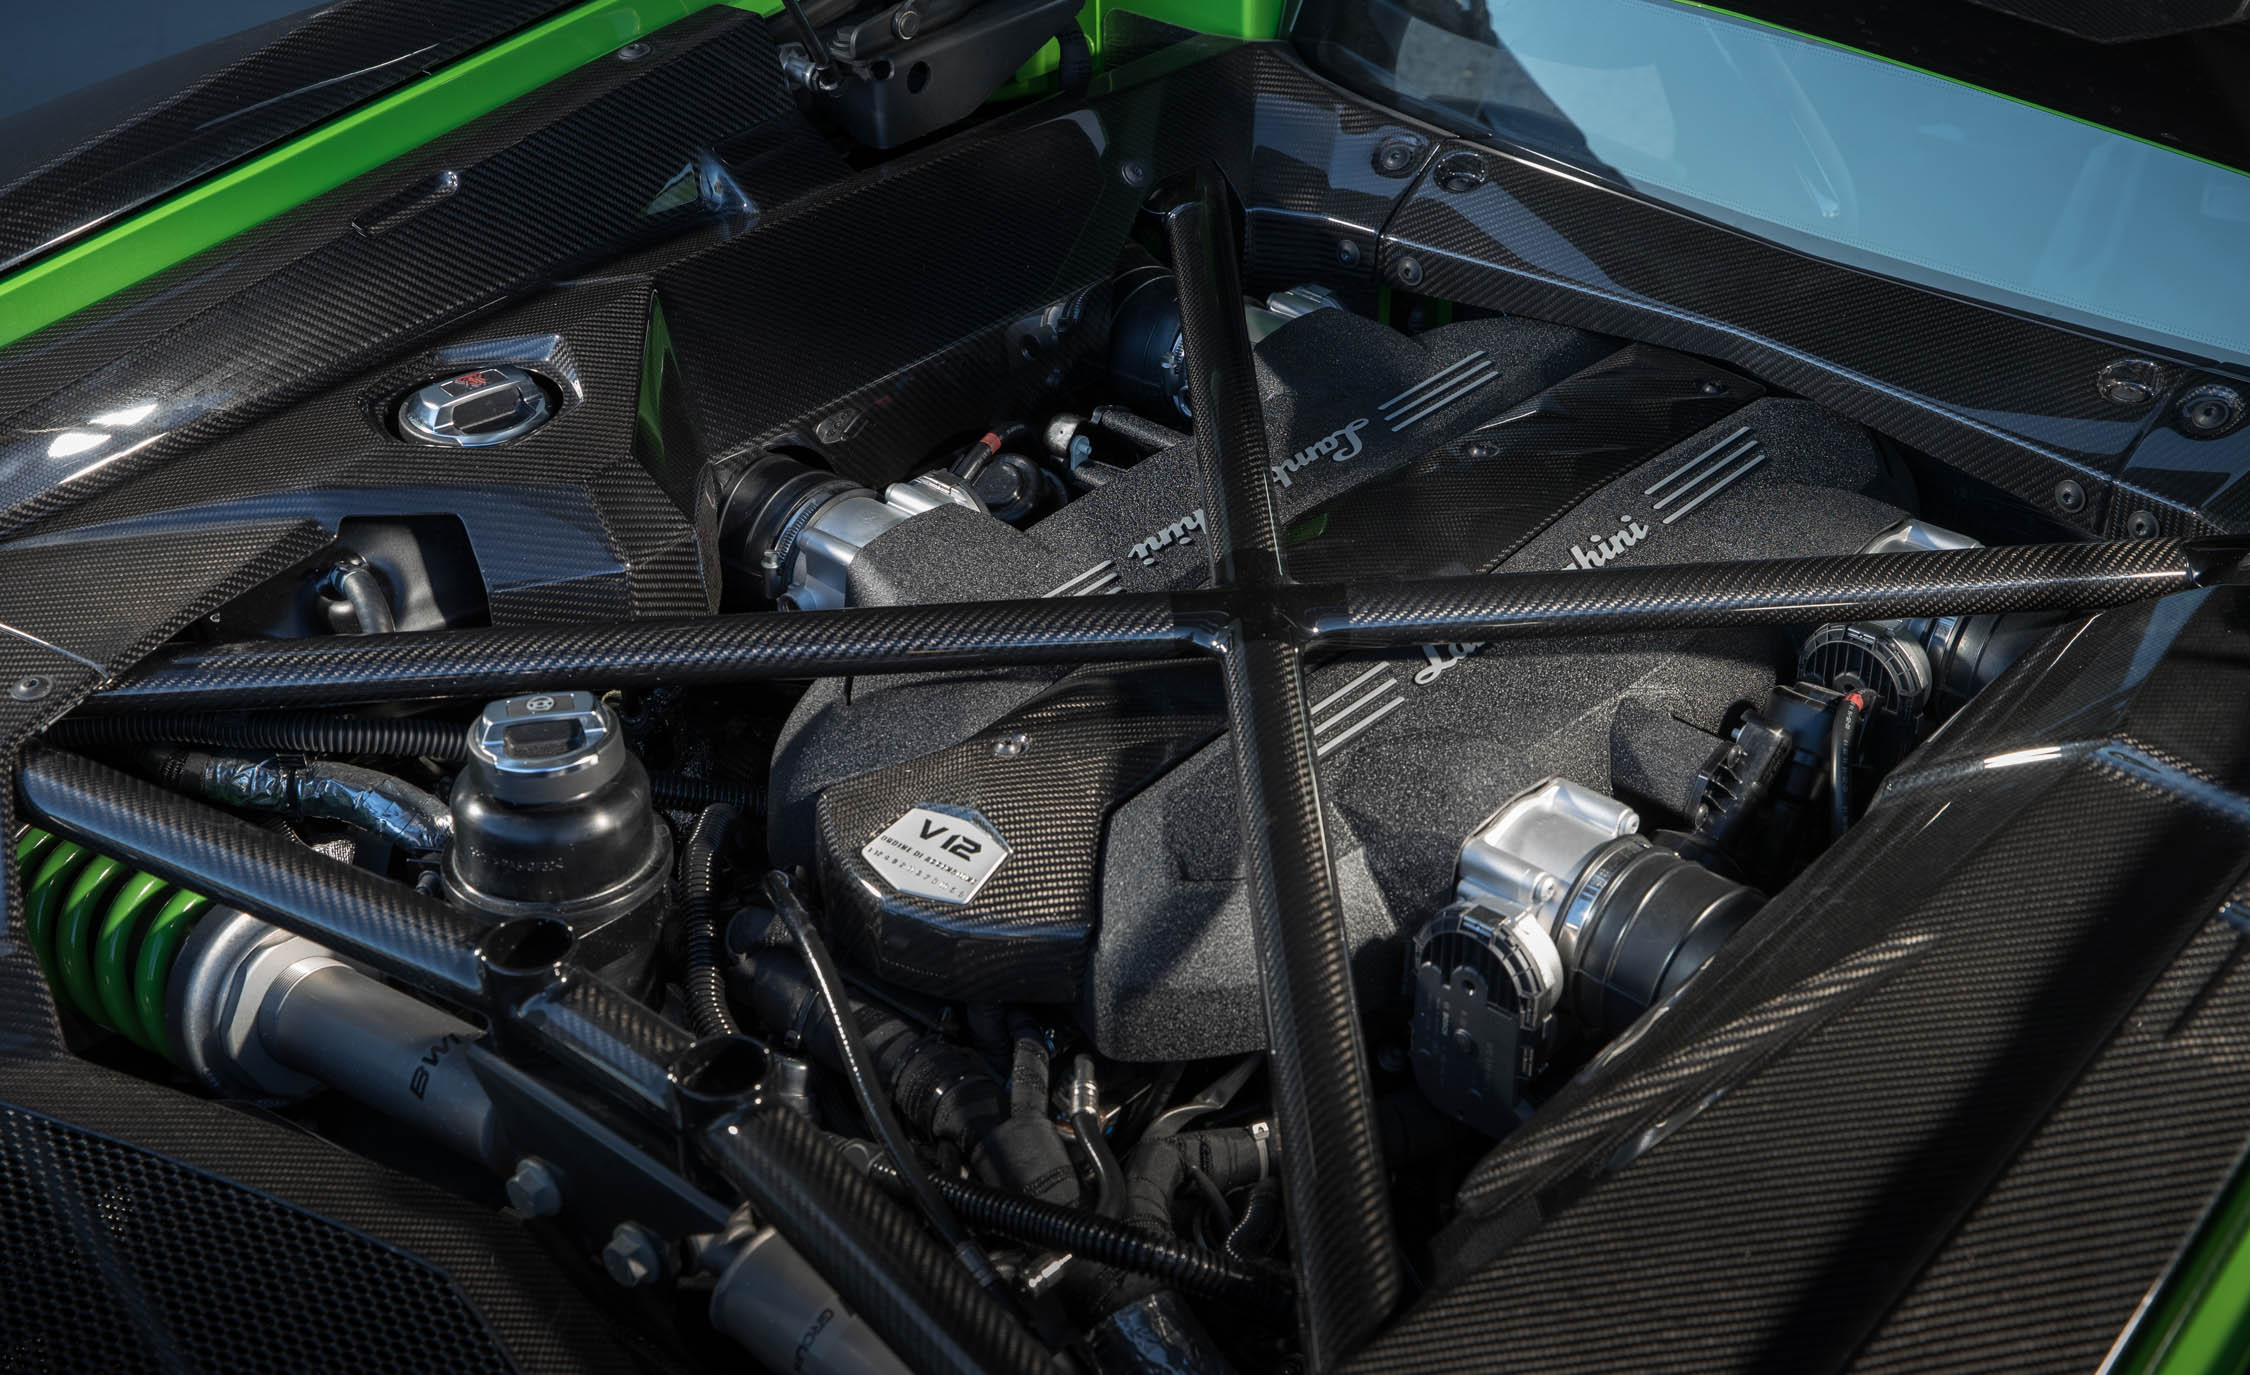 2017 Lamborghini Aventador S View Engine (Photo 20 of 20)